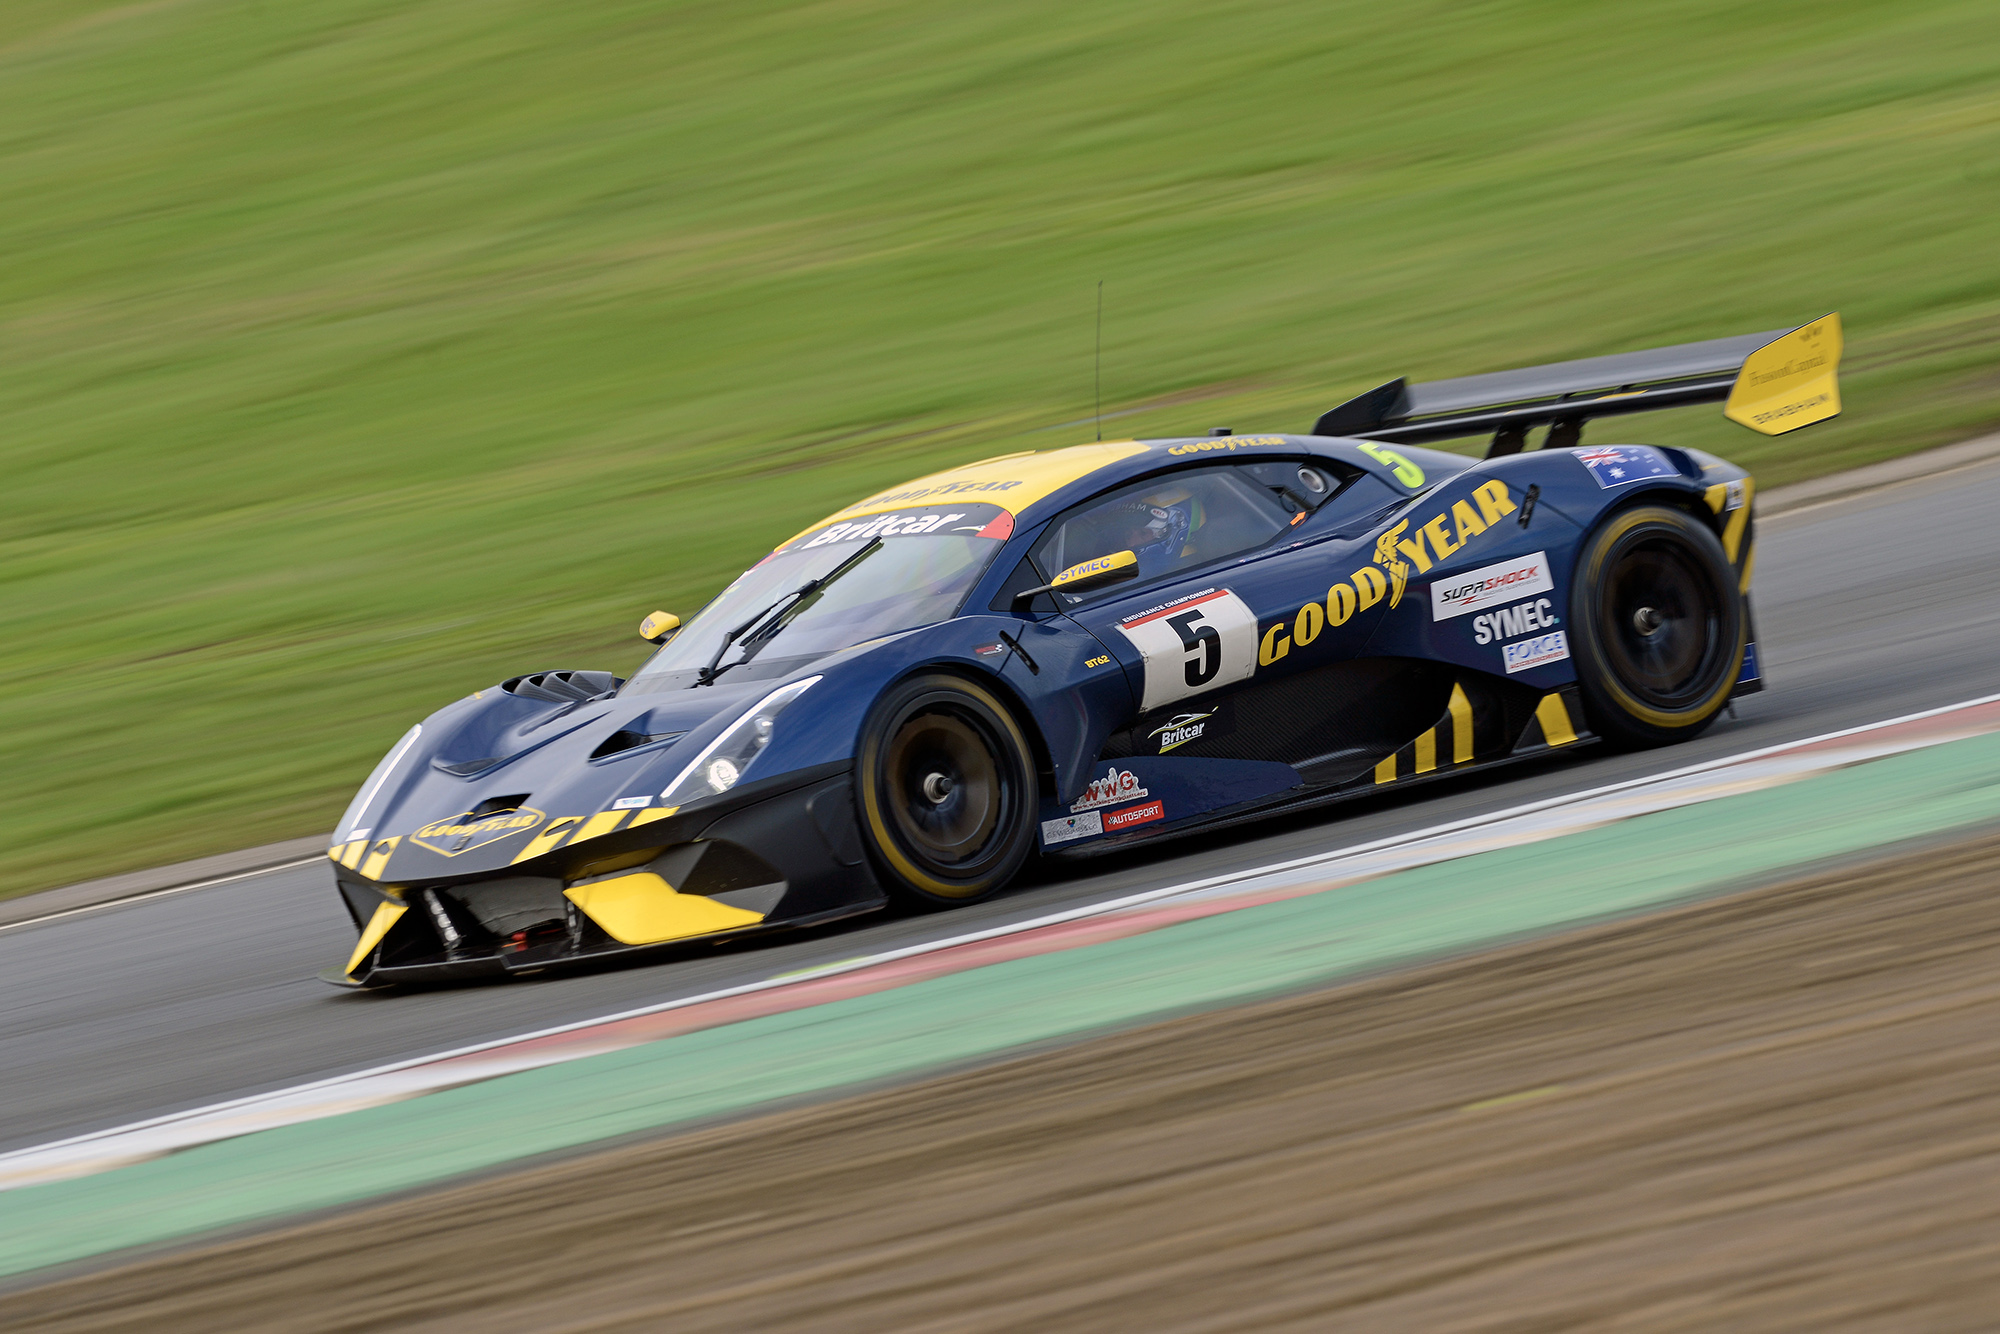 Brabham wins in a Brabham: debut victory for BT62 as famous name returns